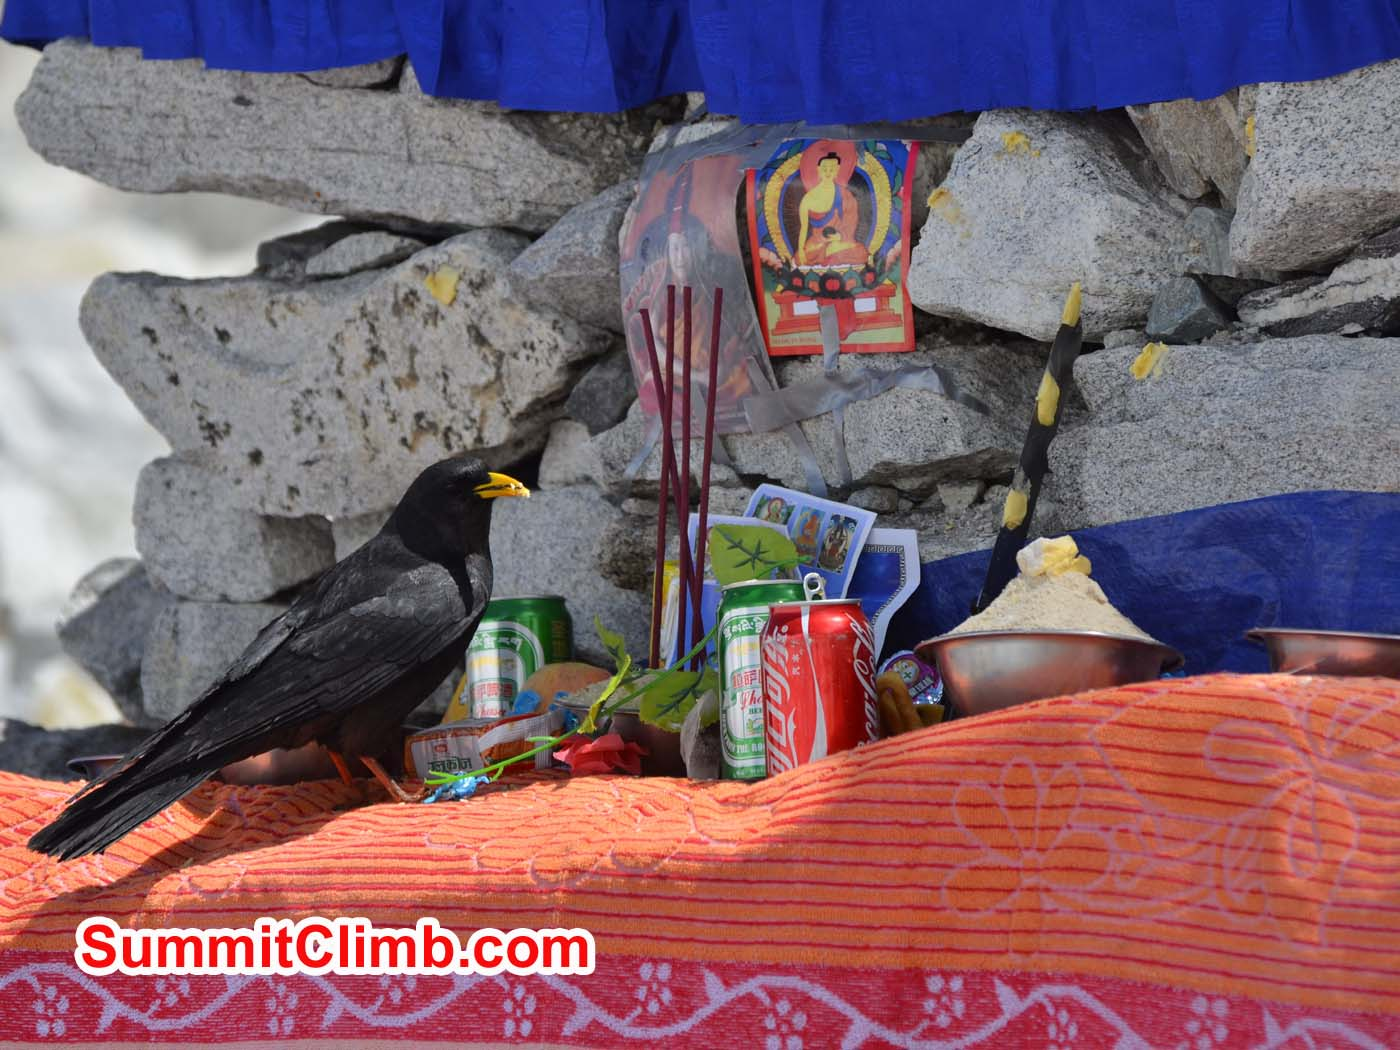 Raven enjoys prayer ceremony at basecamp. Dmitri Nichiporov photo